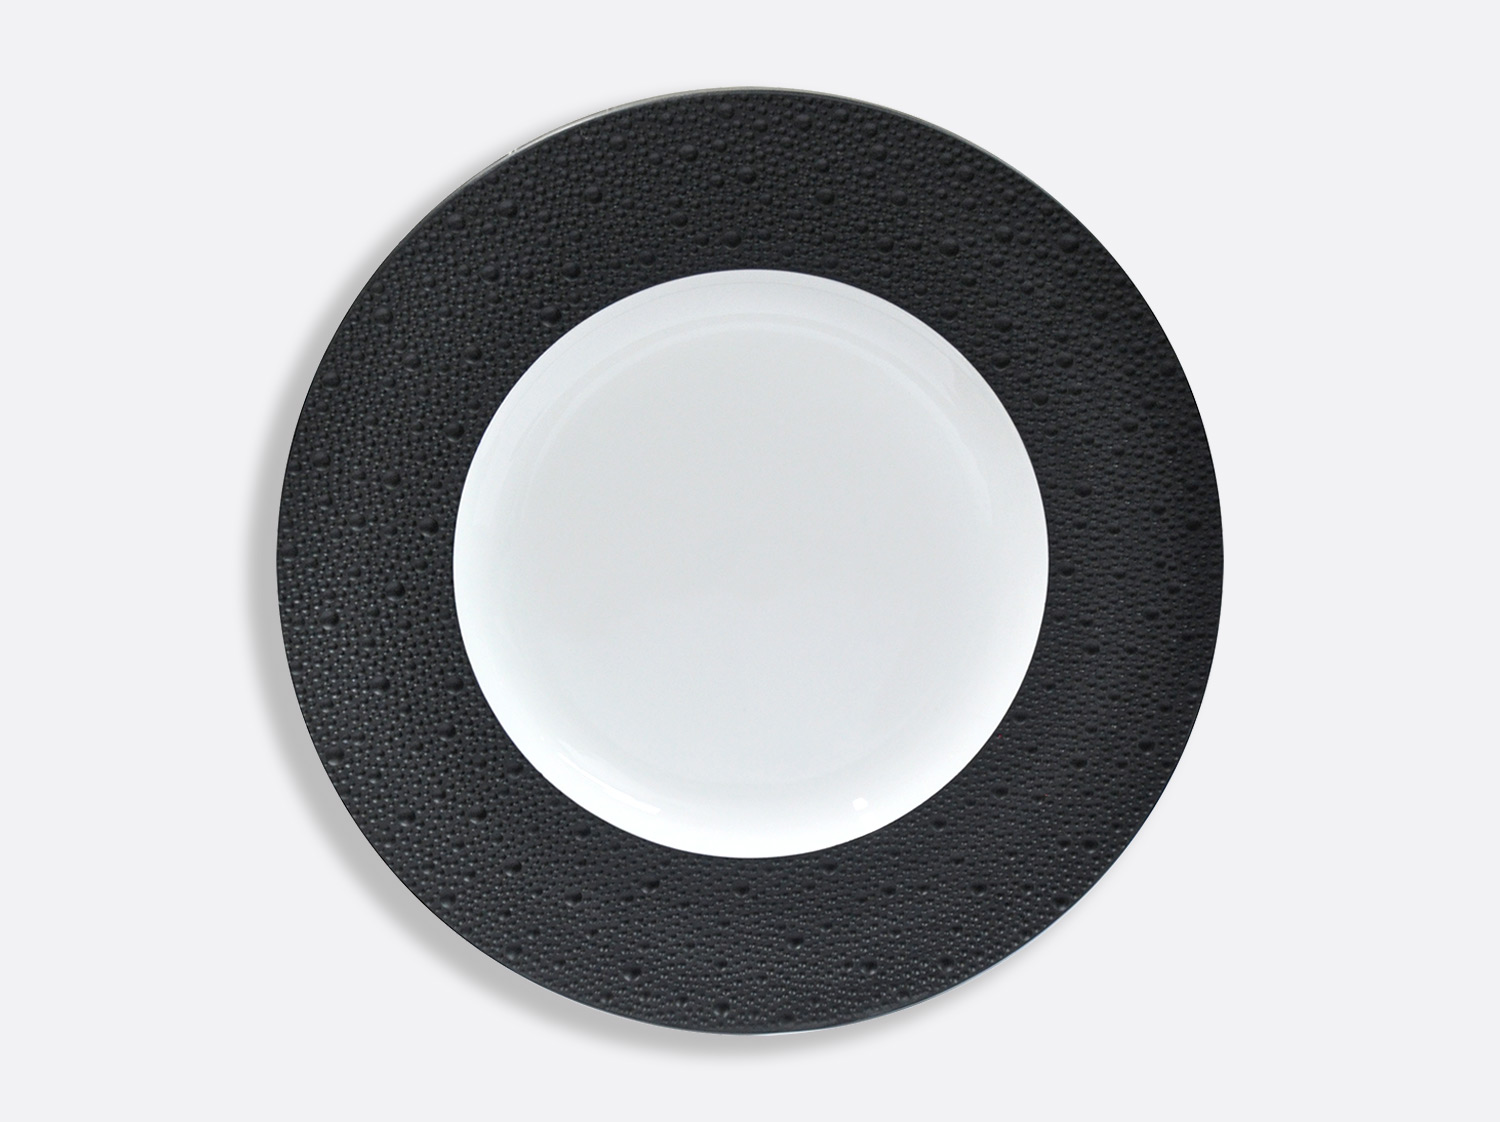 China Plates 31,5 cm - Écume Noir of the collection Ecume Noir | Bernardaud